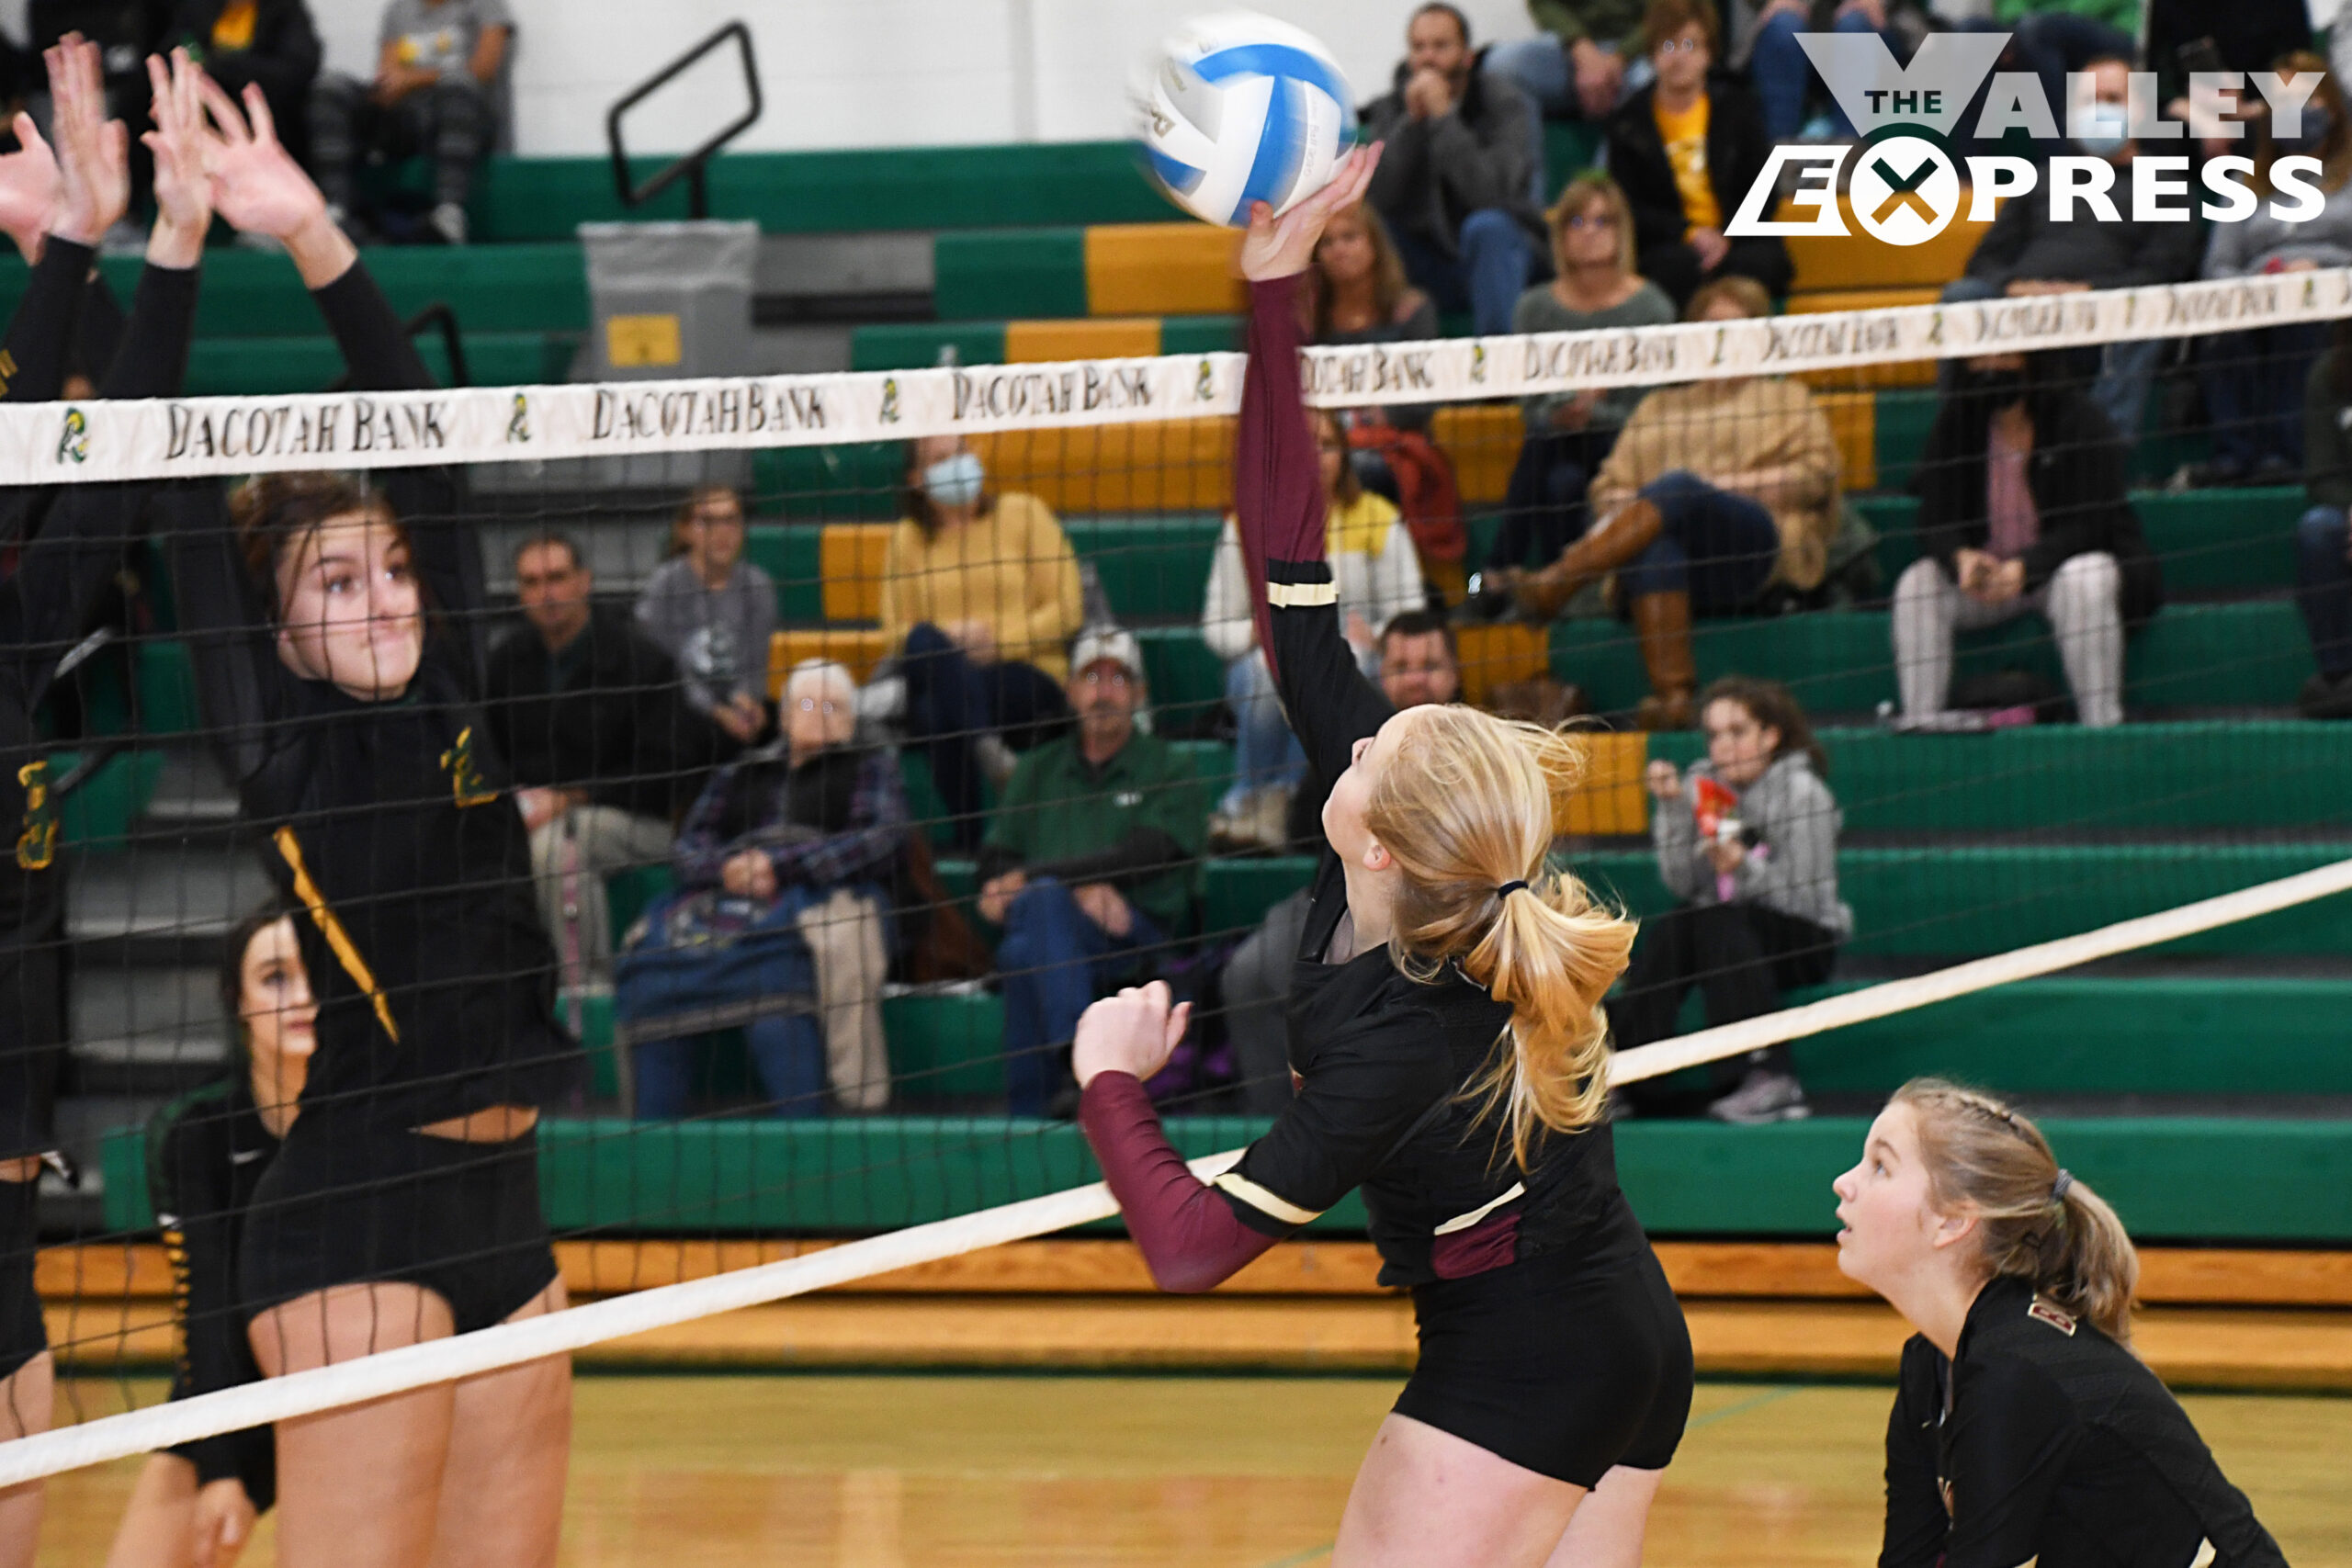 Milbank Takes TZ to Four Sets; Falls to Top Roncalli Team